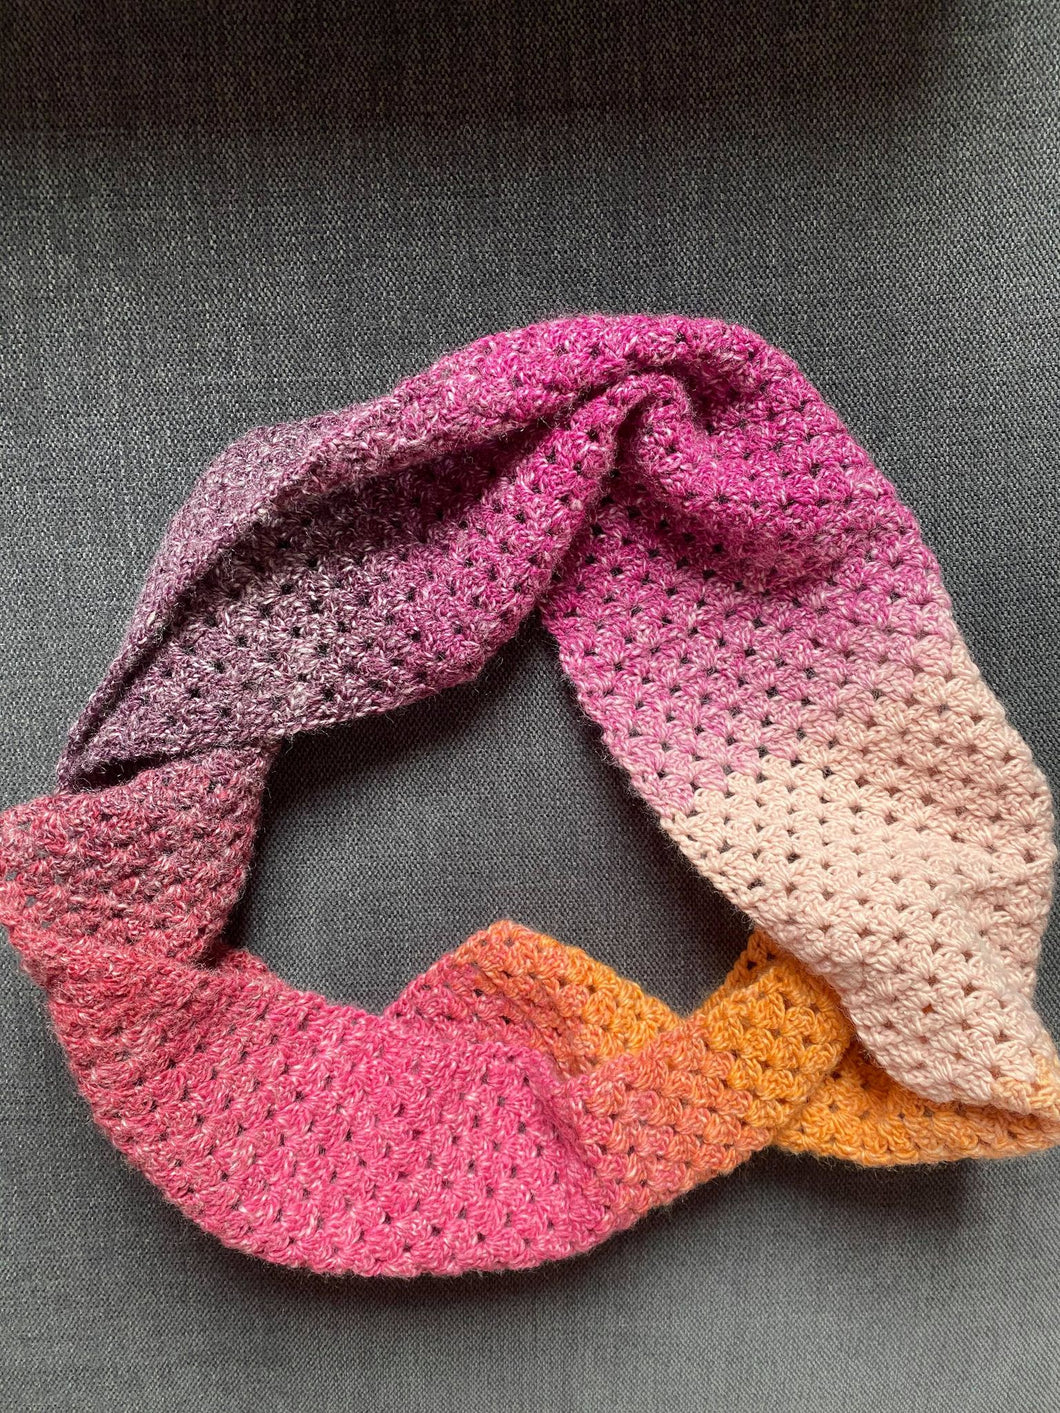 Learn to crochet perfect straight edges with our Gogglefrogs Granny Stripe Cowl Pattern